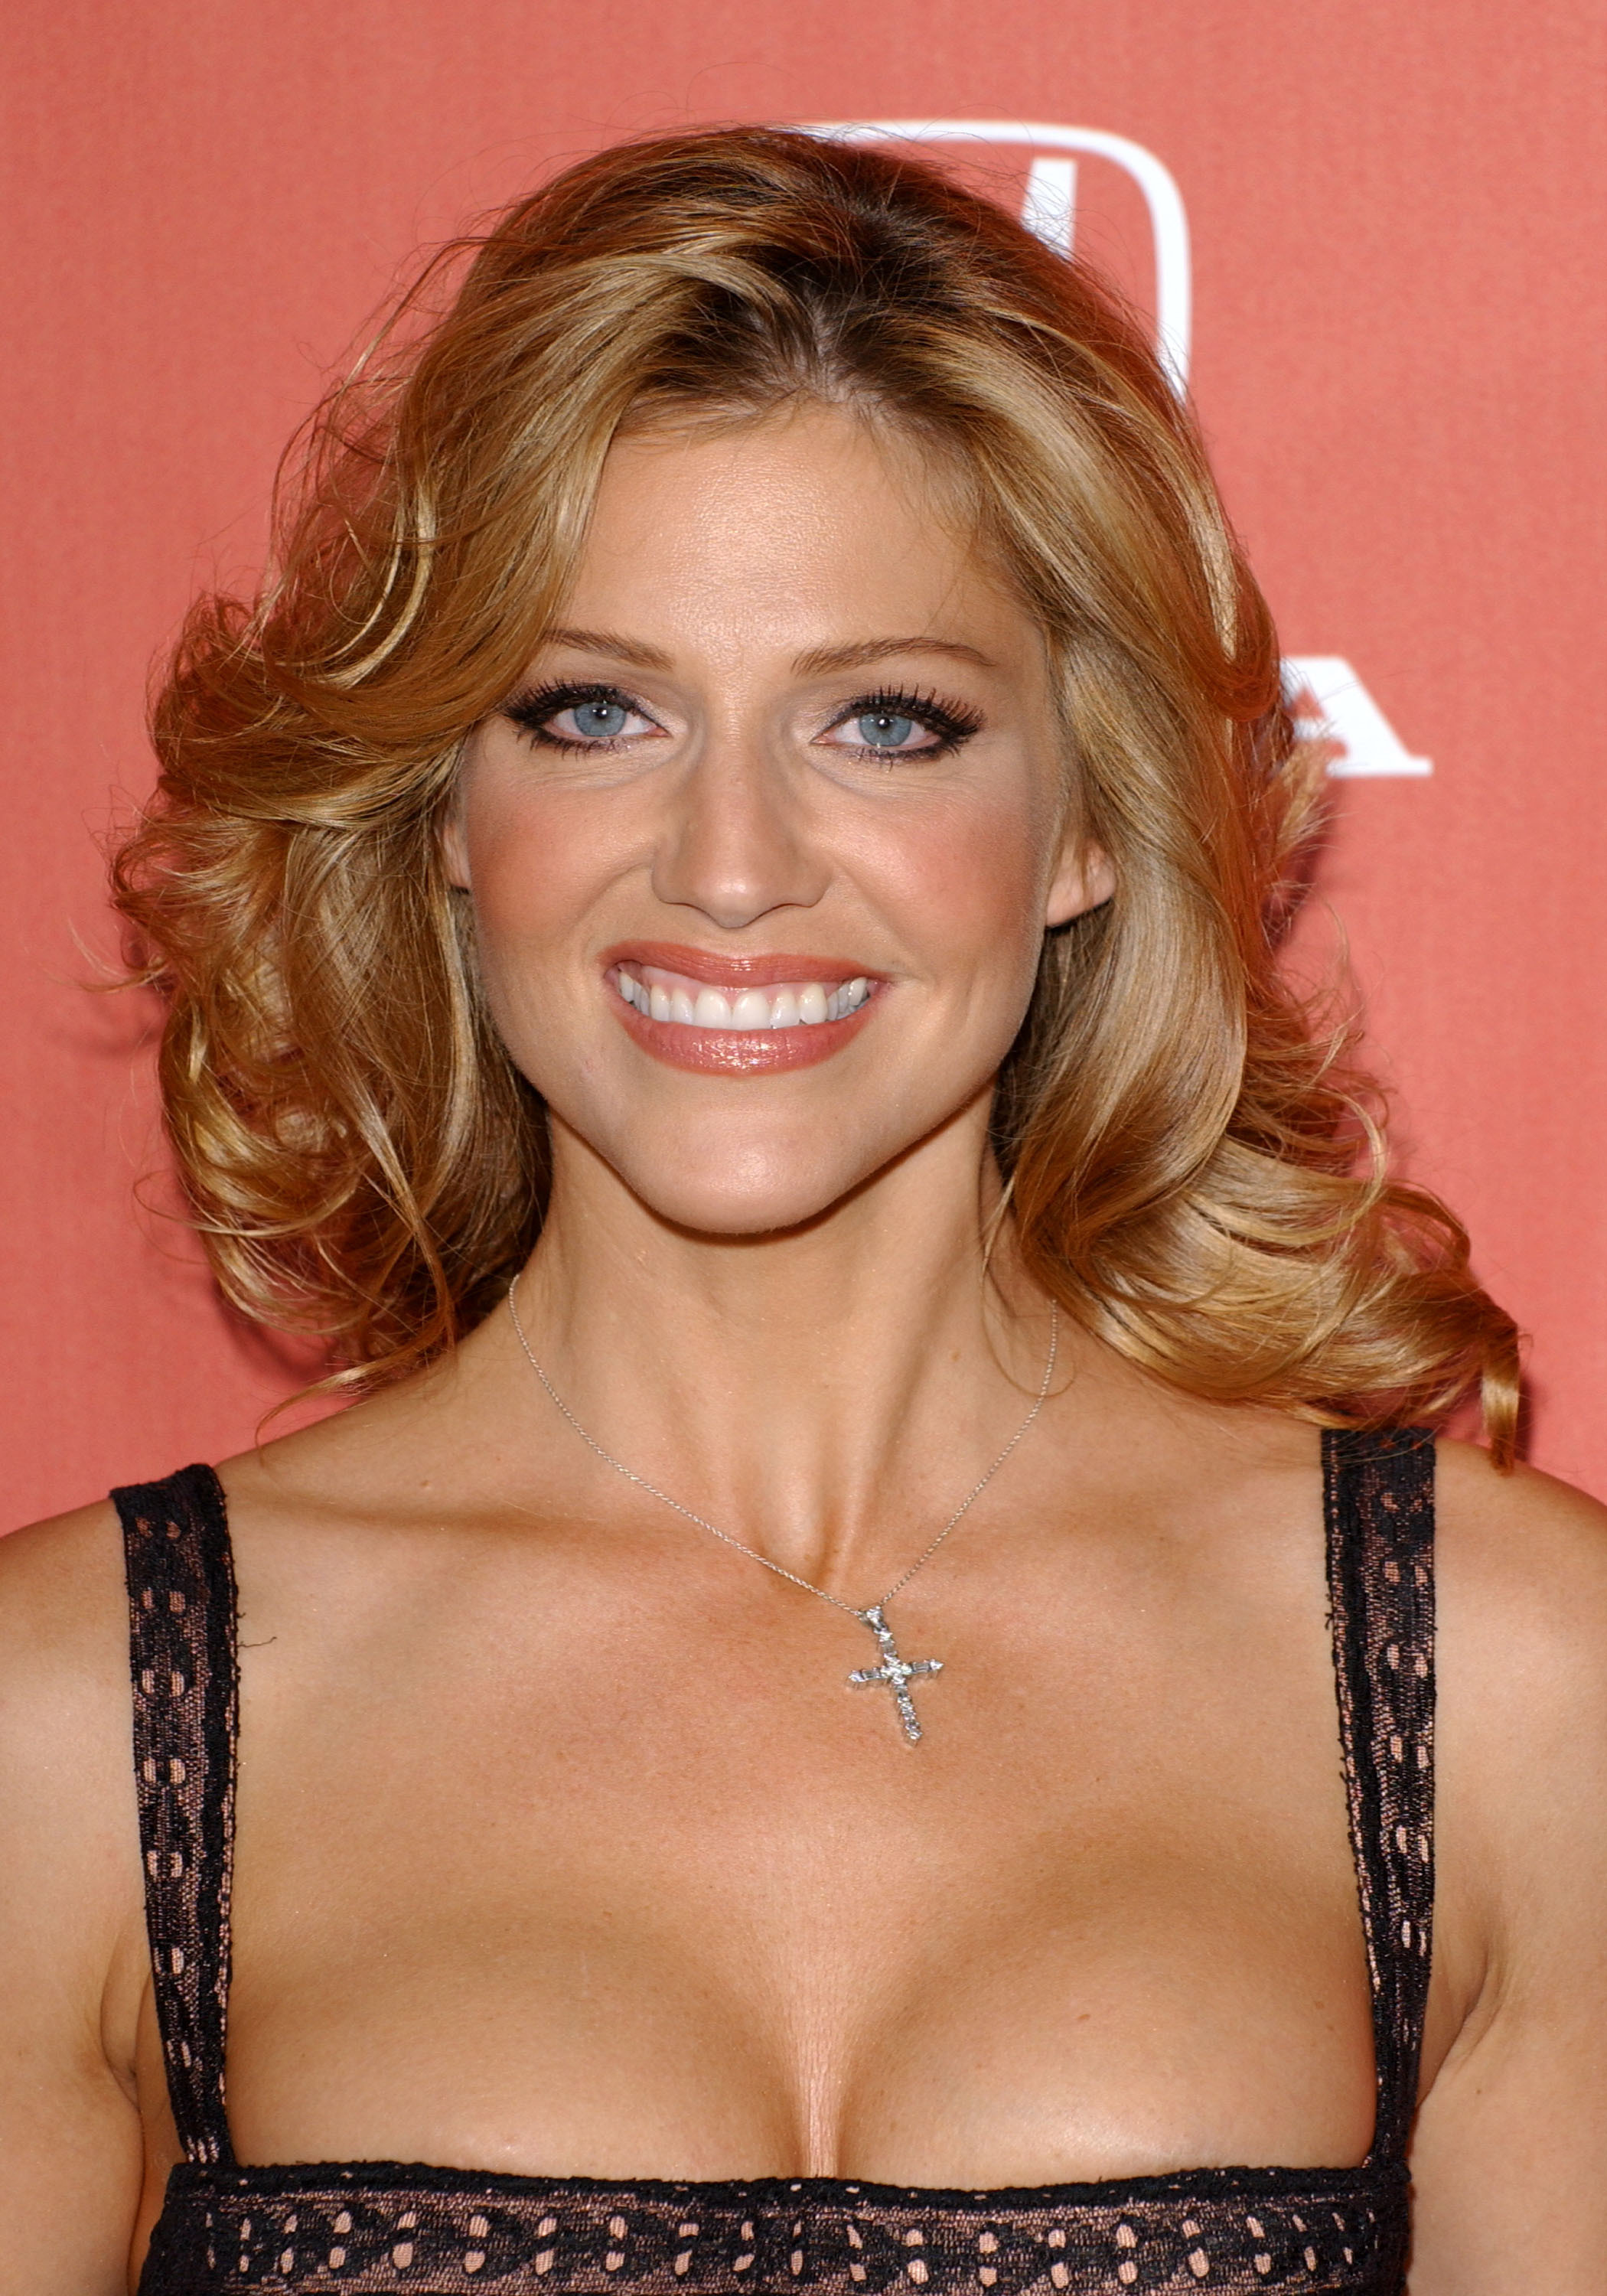 Tricia Helfer Wallpapers Images Photos Pictures Backgrounds